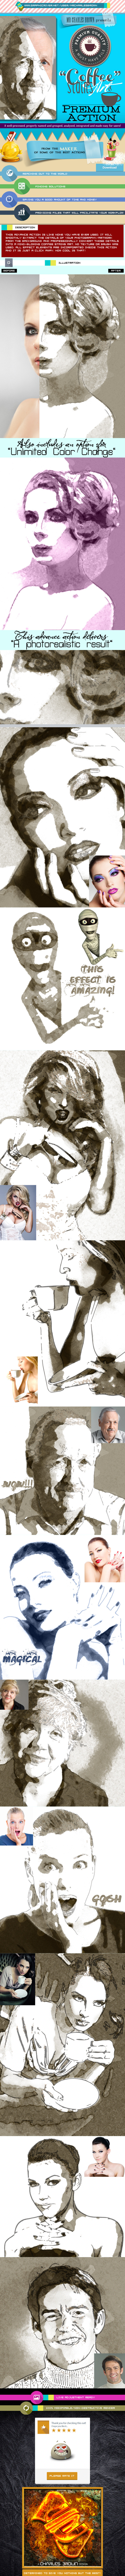 Advance Coffee Stains Art - Actions Photoshop